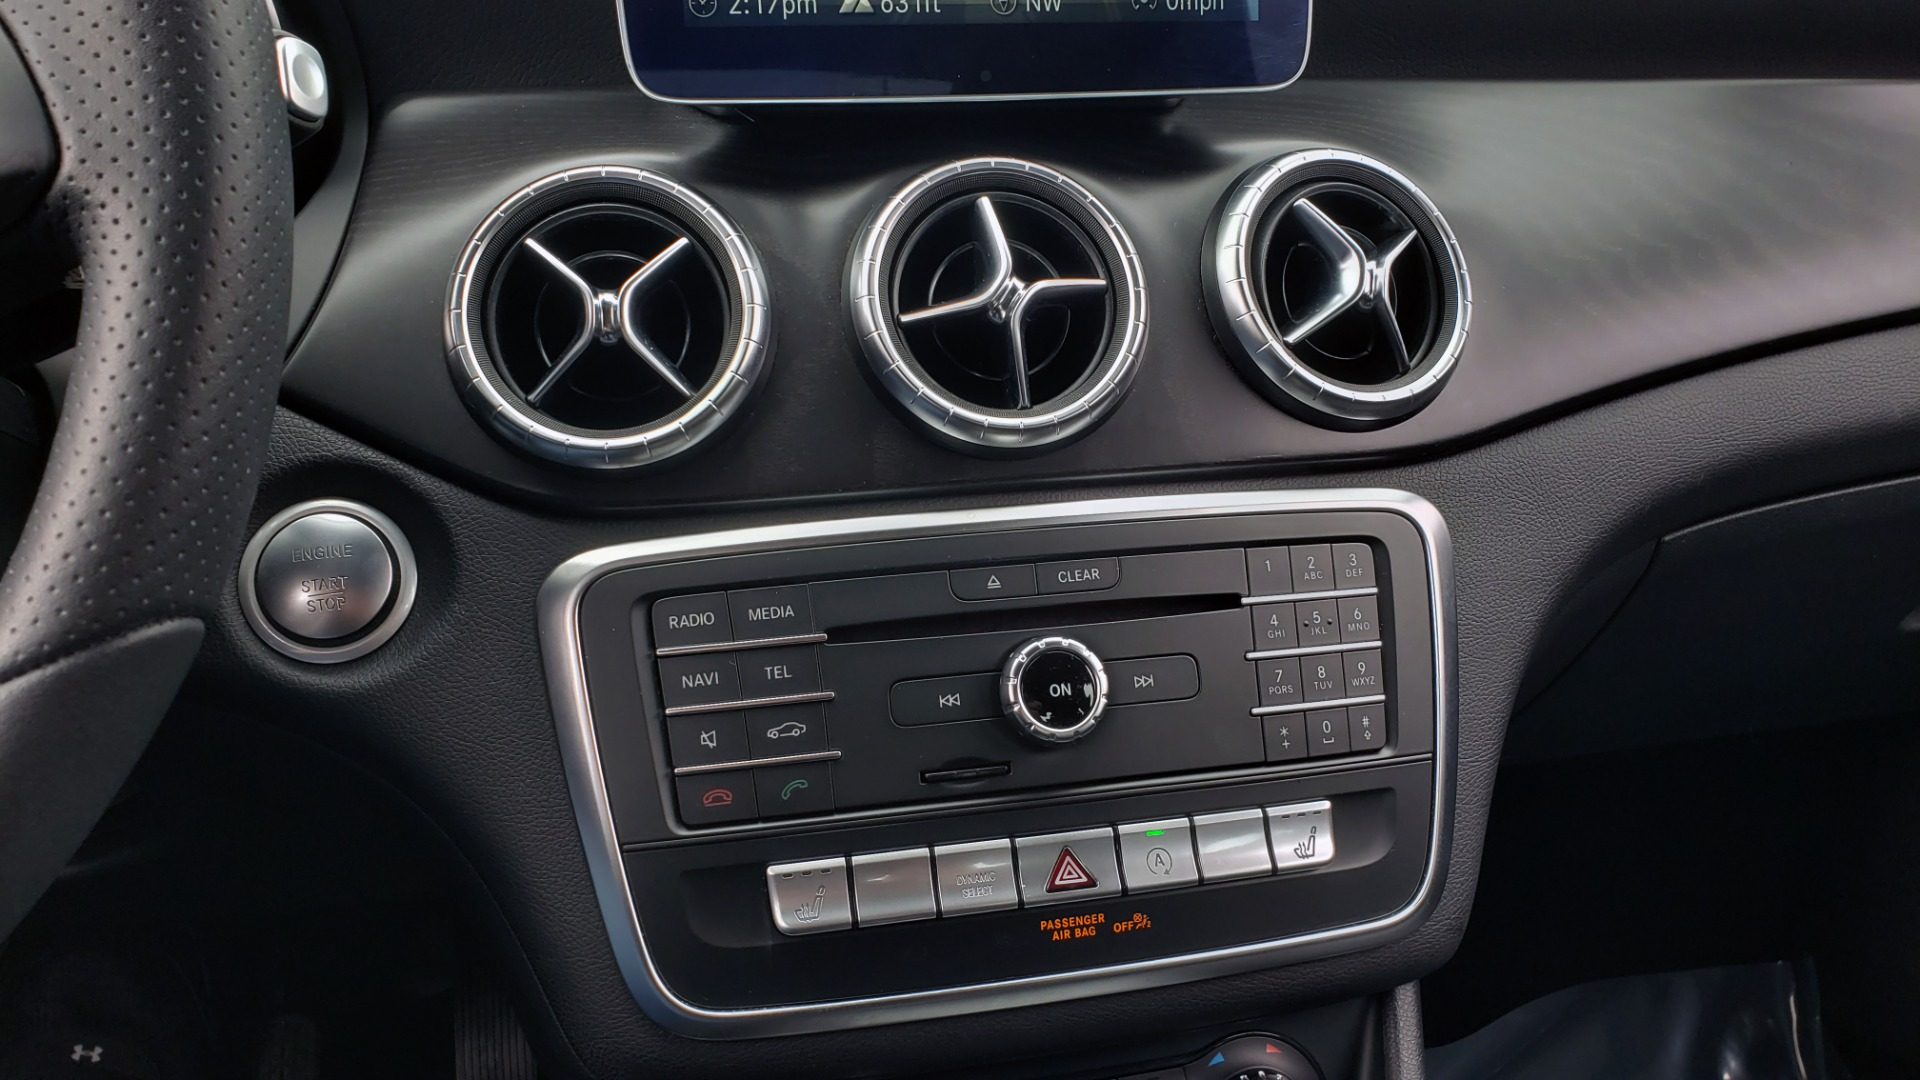 Used 2018 Mercedes-Benz CLA 250 PREMIUM / NAV / PANO-ROOF / APPLE CARPLAY / REARVIEW for sale $23,995 at Formula Imports in Charlotte NC 28227 48